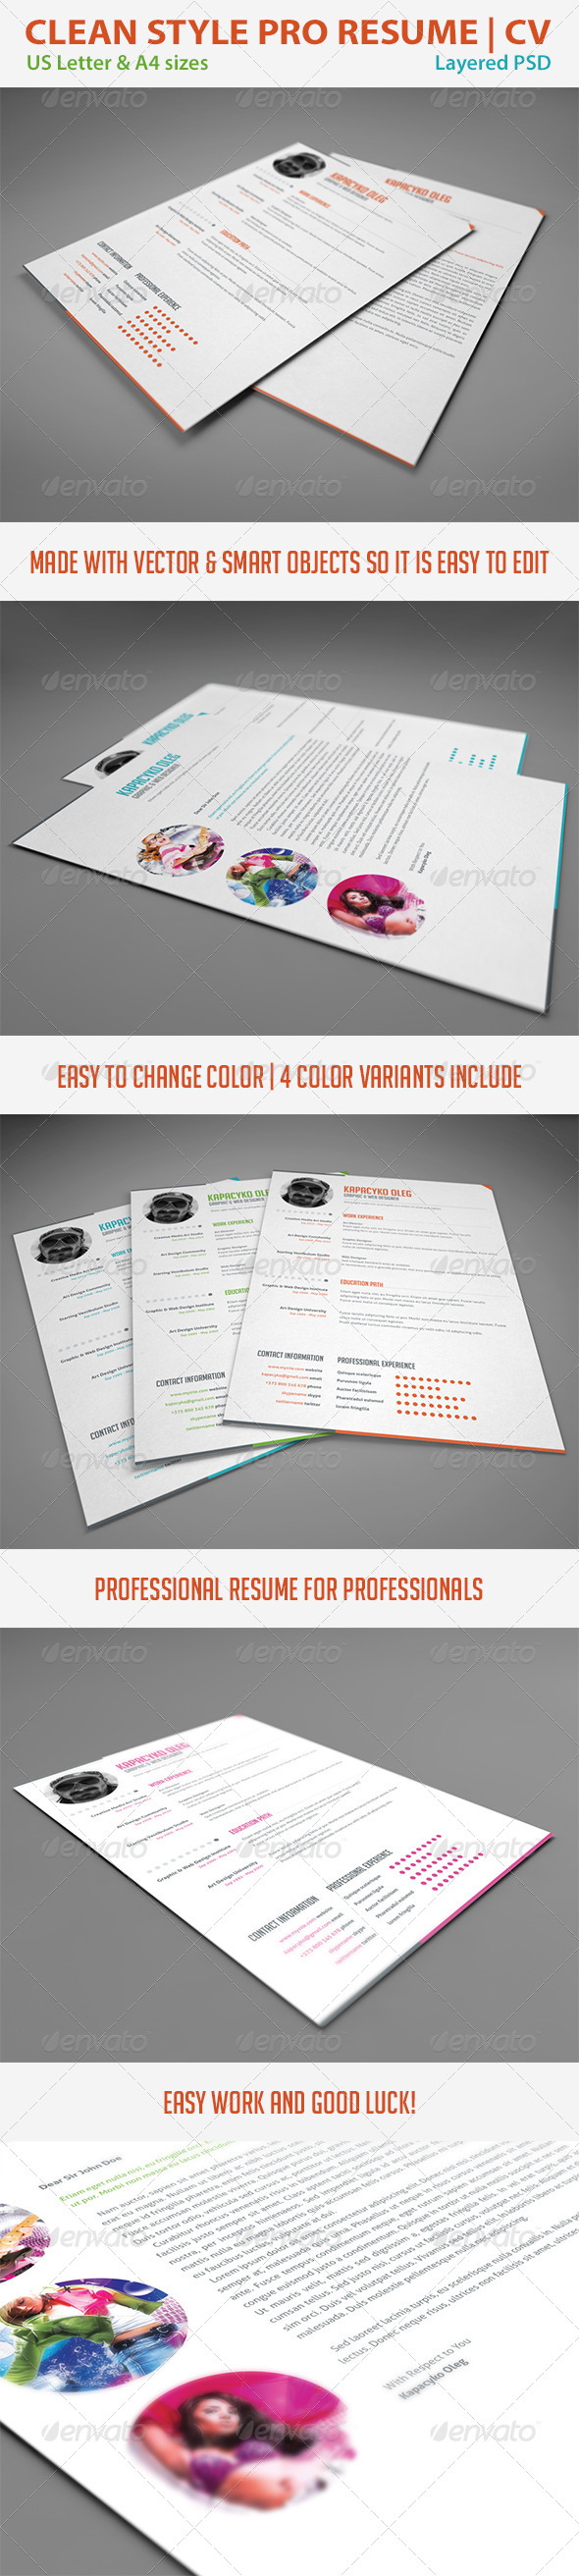 GraphicRiver Clean Style Resume CV 4445233